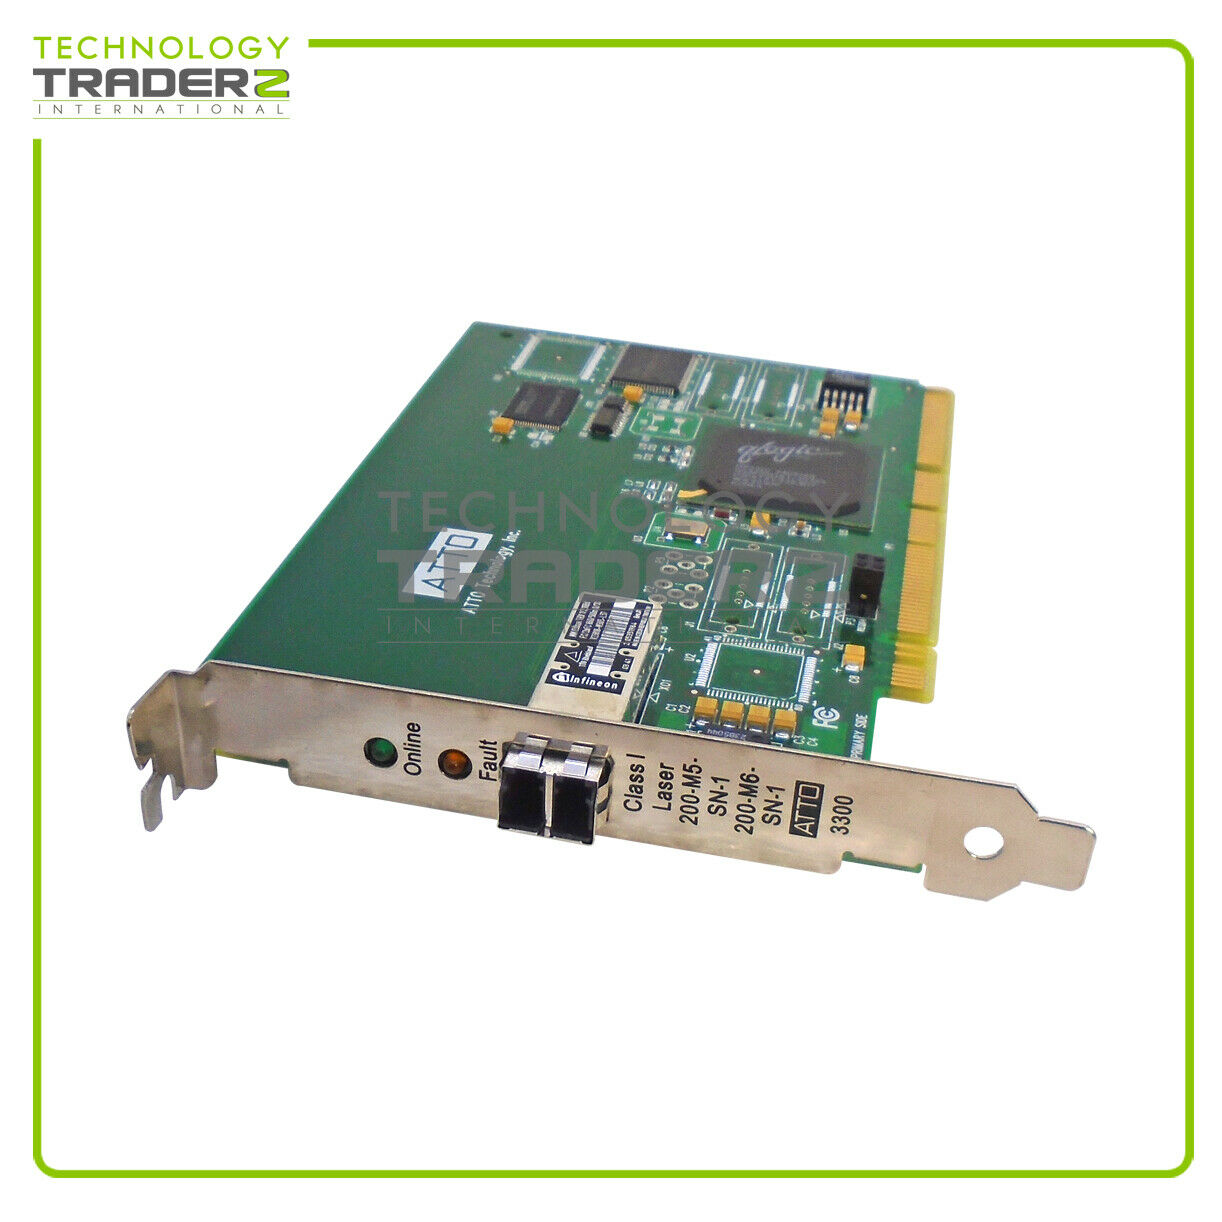 0030-03207-01 Atto 3300 2G Fibre Channel Host Bus Adapter * Pulled *